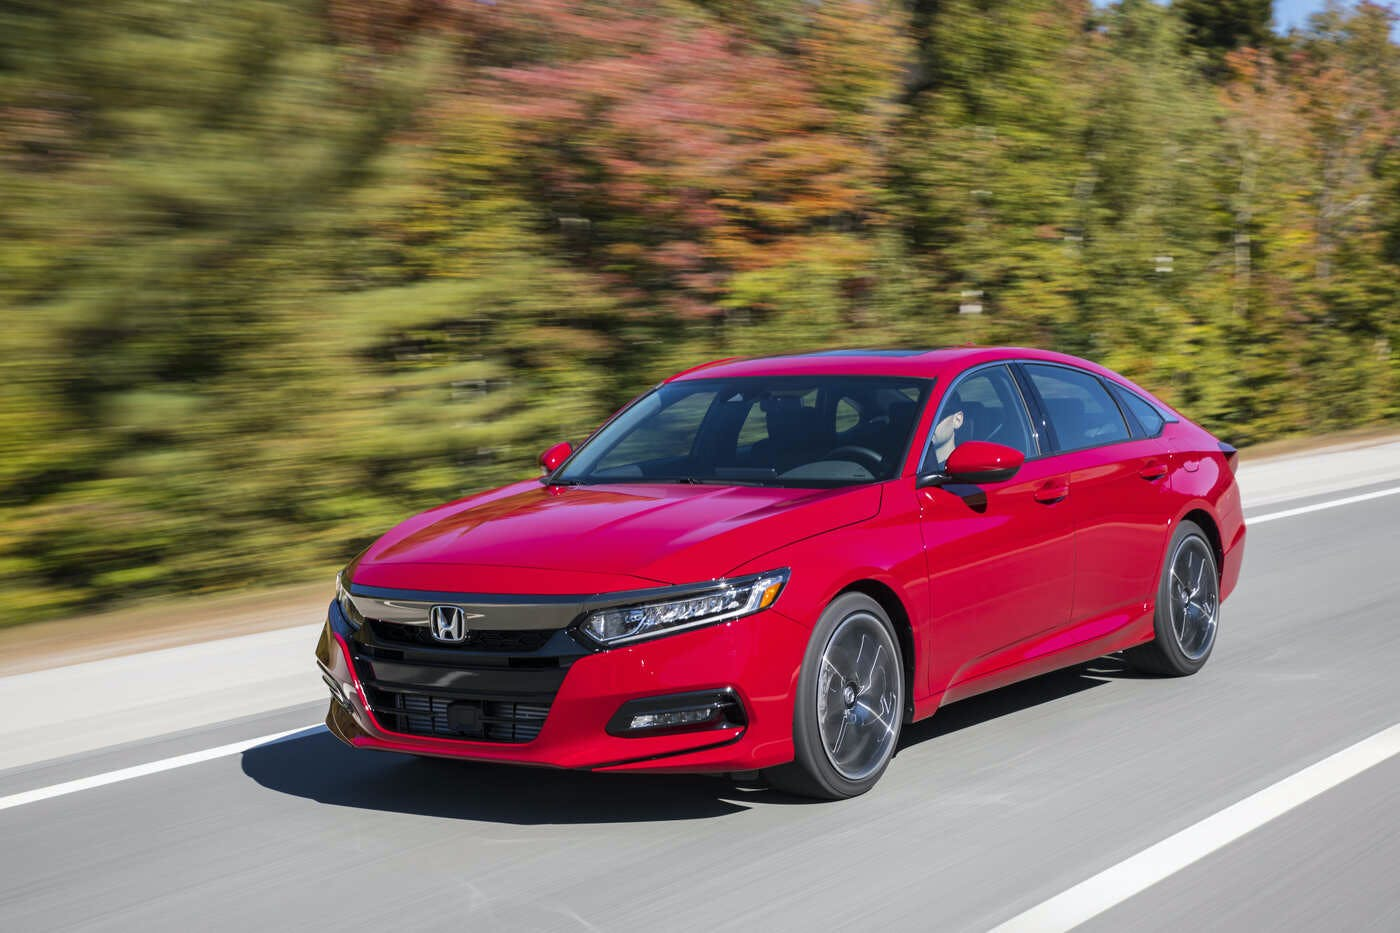 2020 Honda Accord Specs and Review